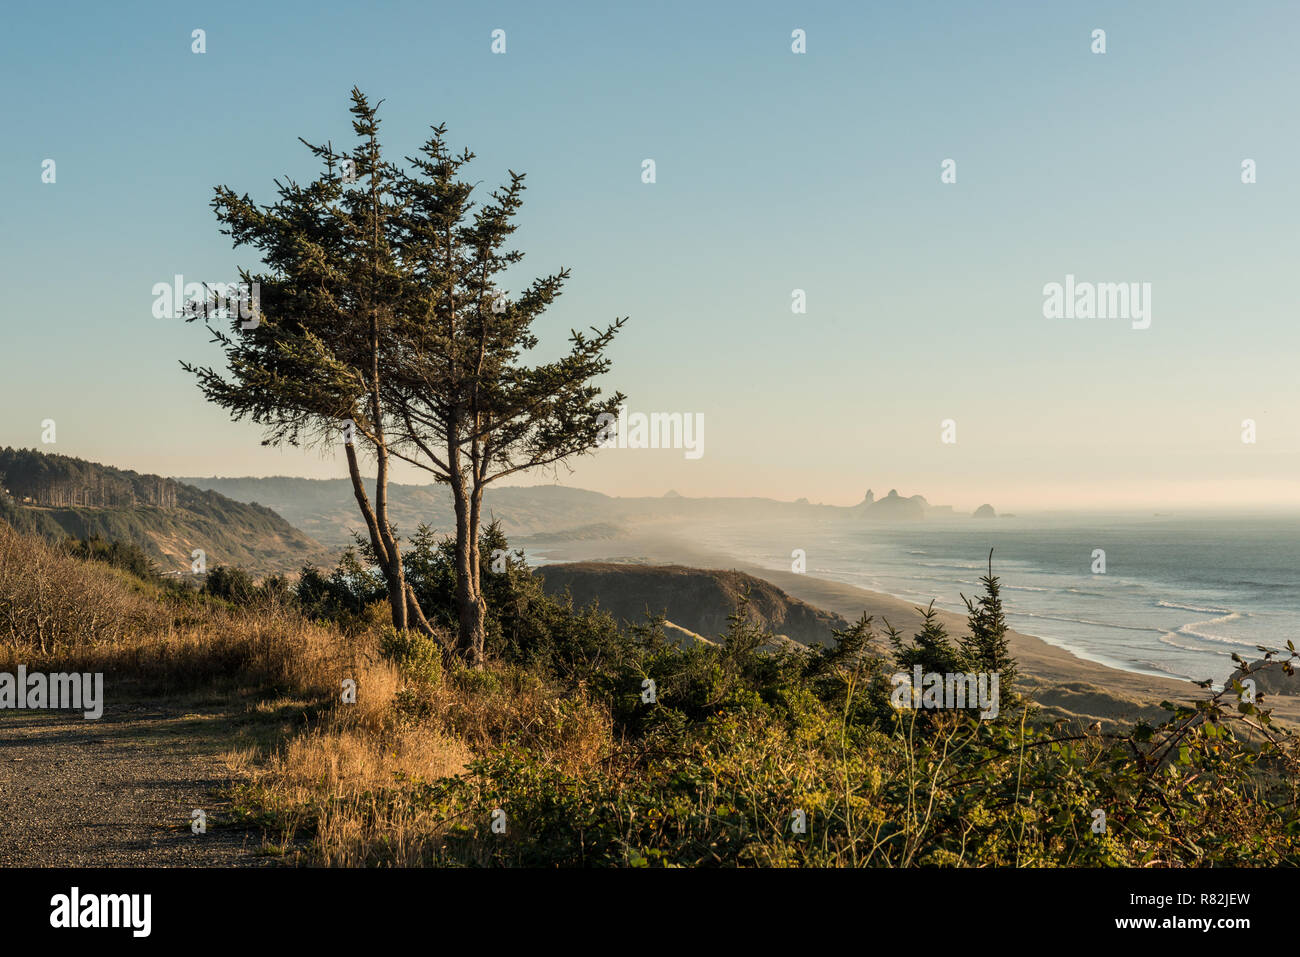 Sunset views of the south coast of Oregon - Stock Image